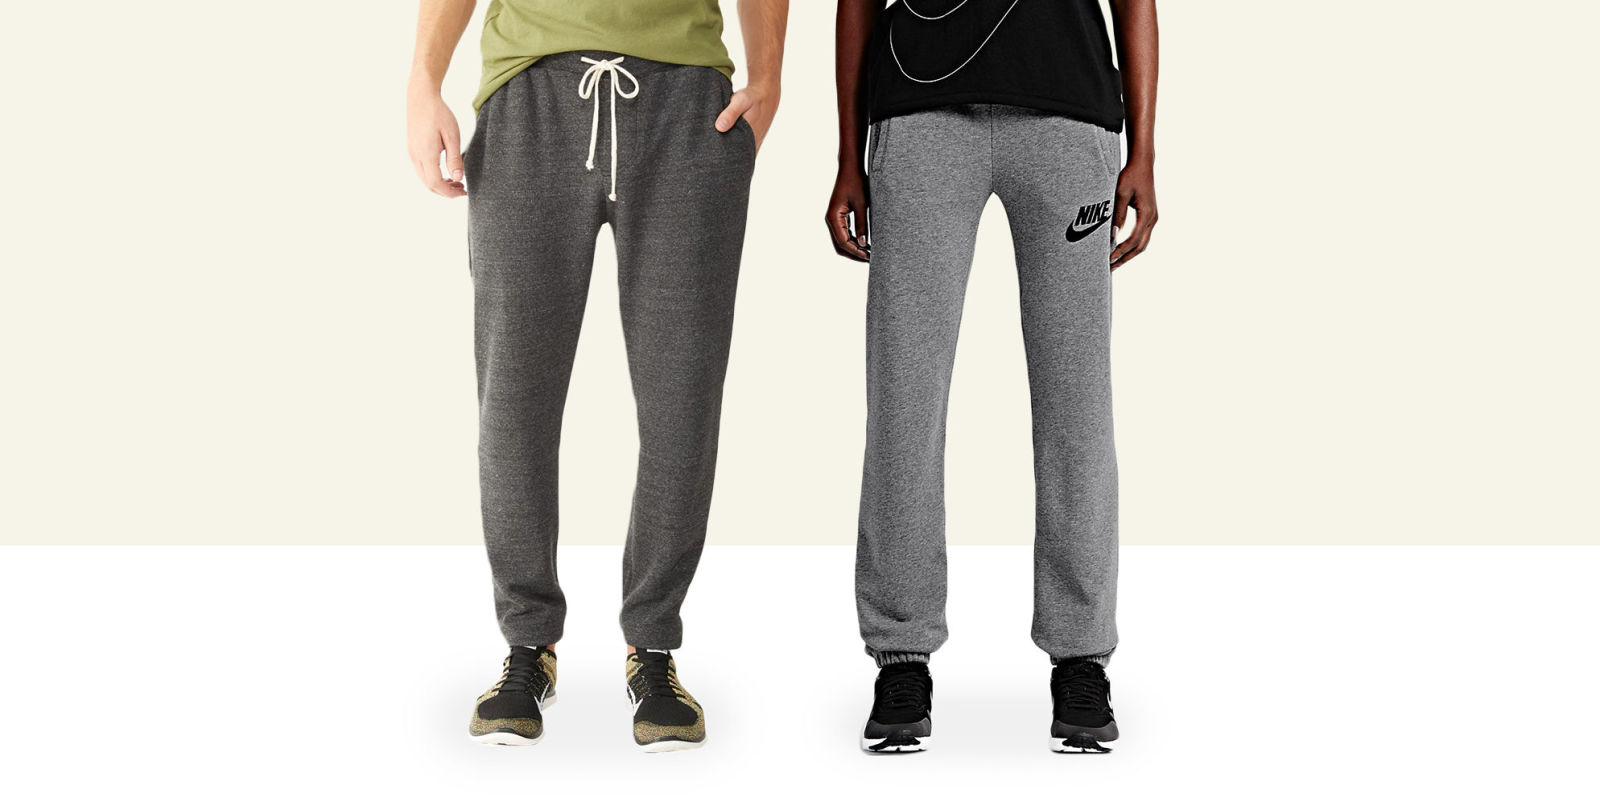 Brilliant Nike Baggy Sweatpants For Women New Mens Women Boys Casual